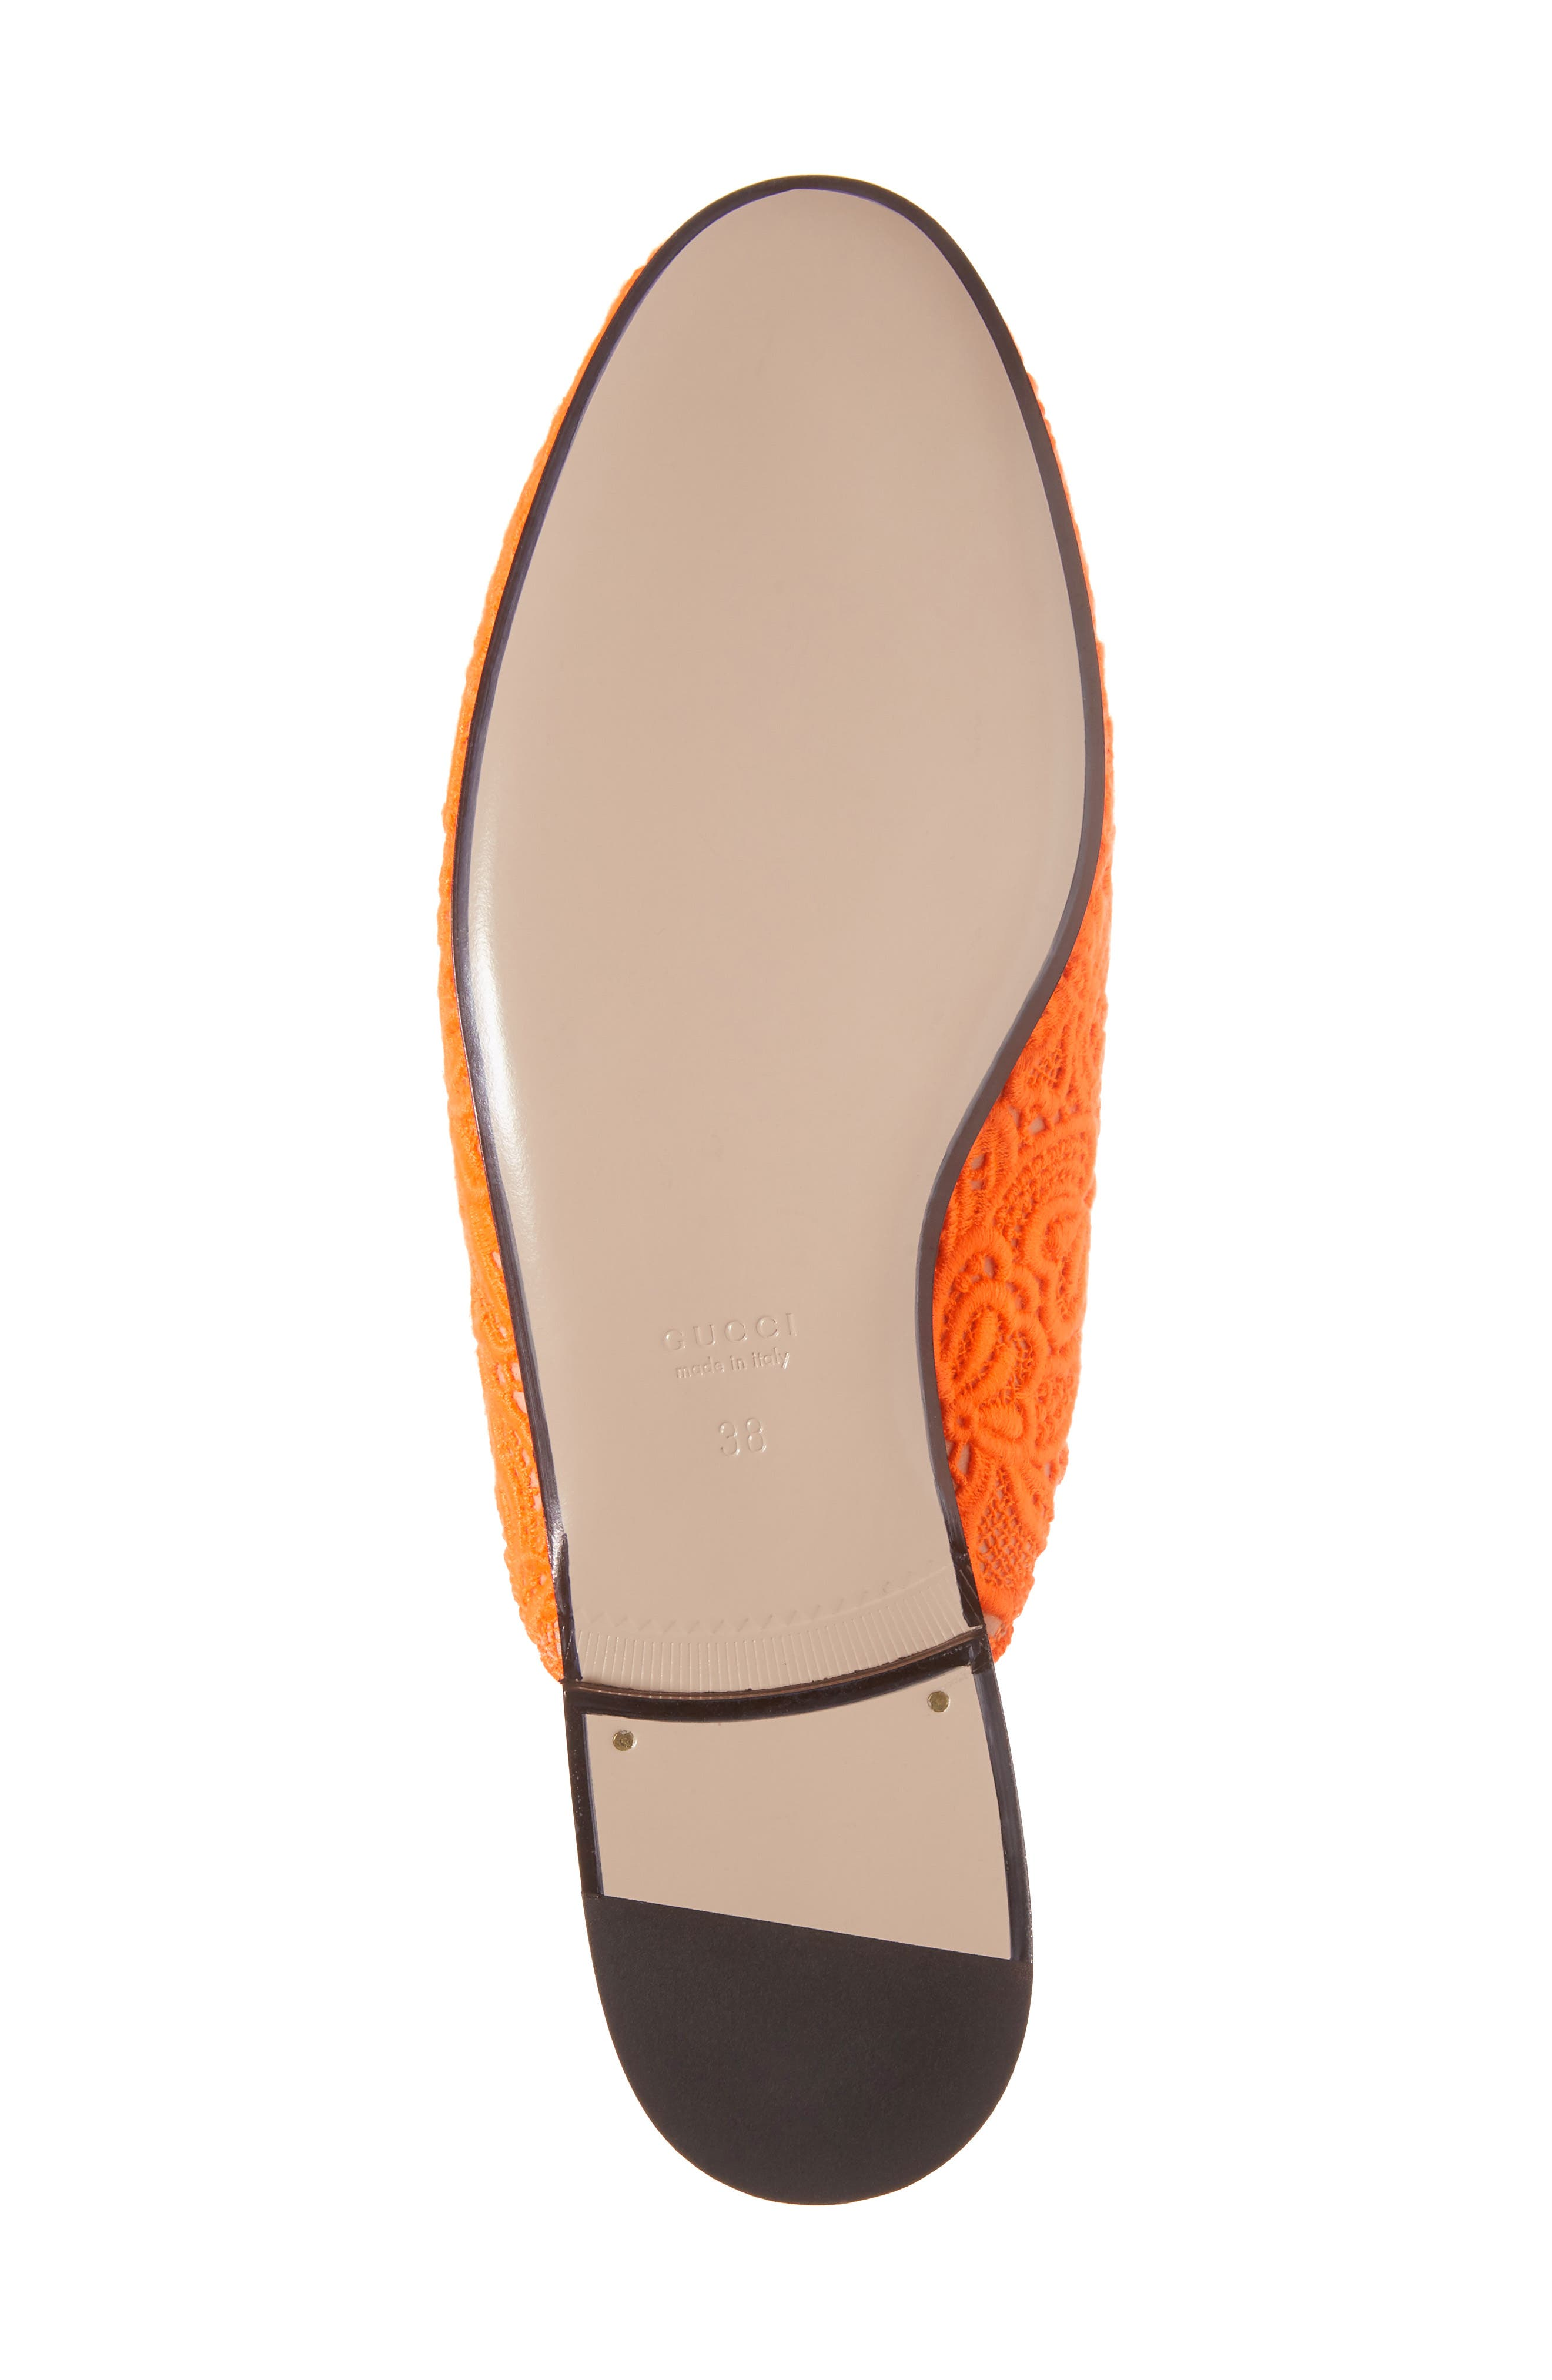 Princetown Loafer Mule,                             Alternate thumbnail 6, color,                             800